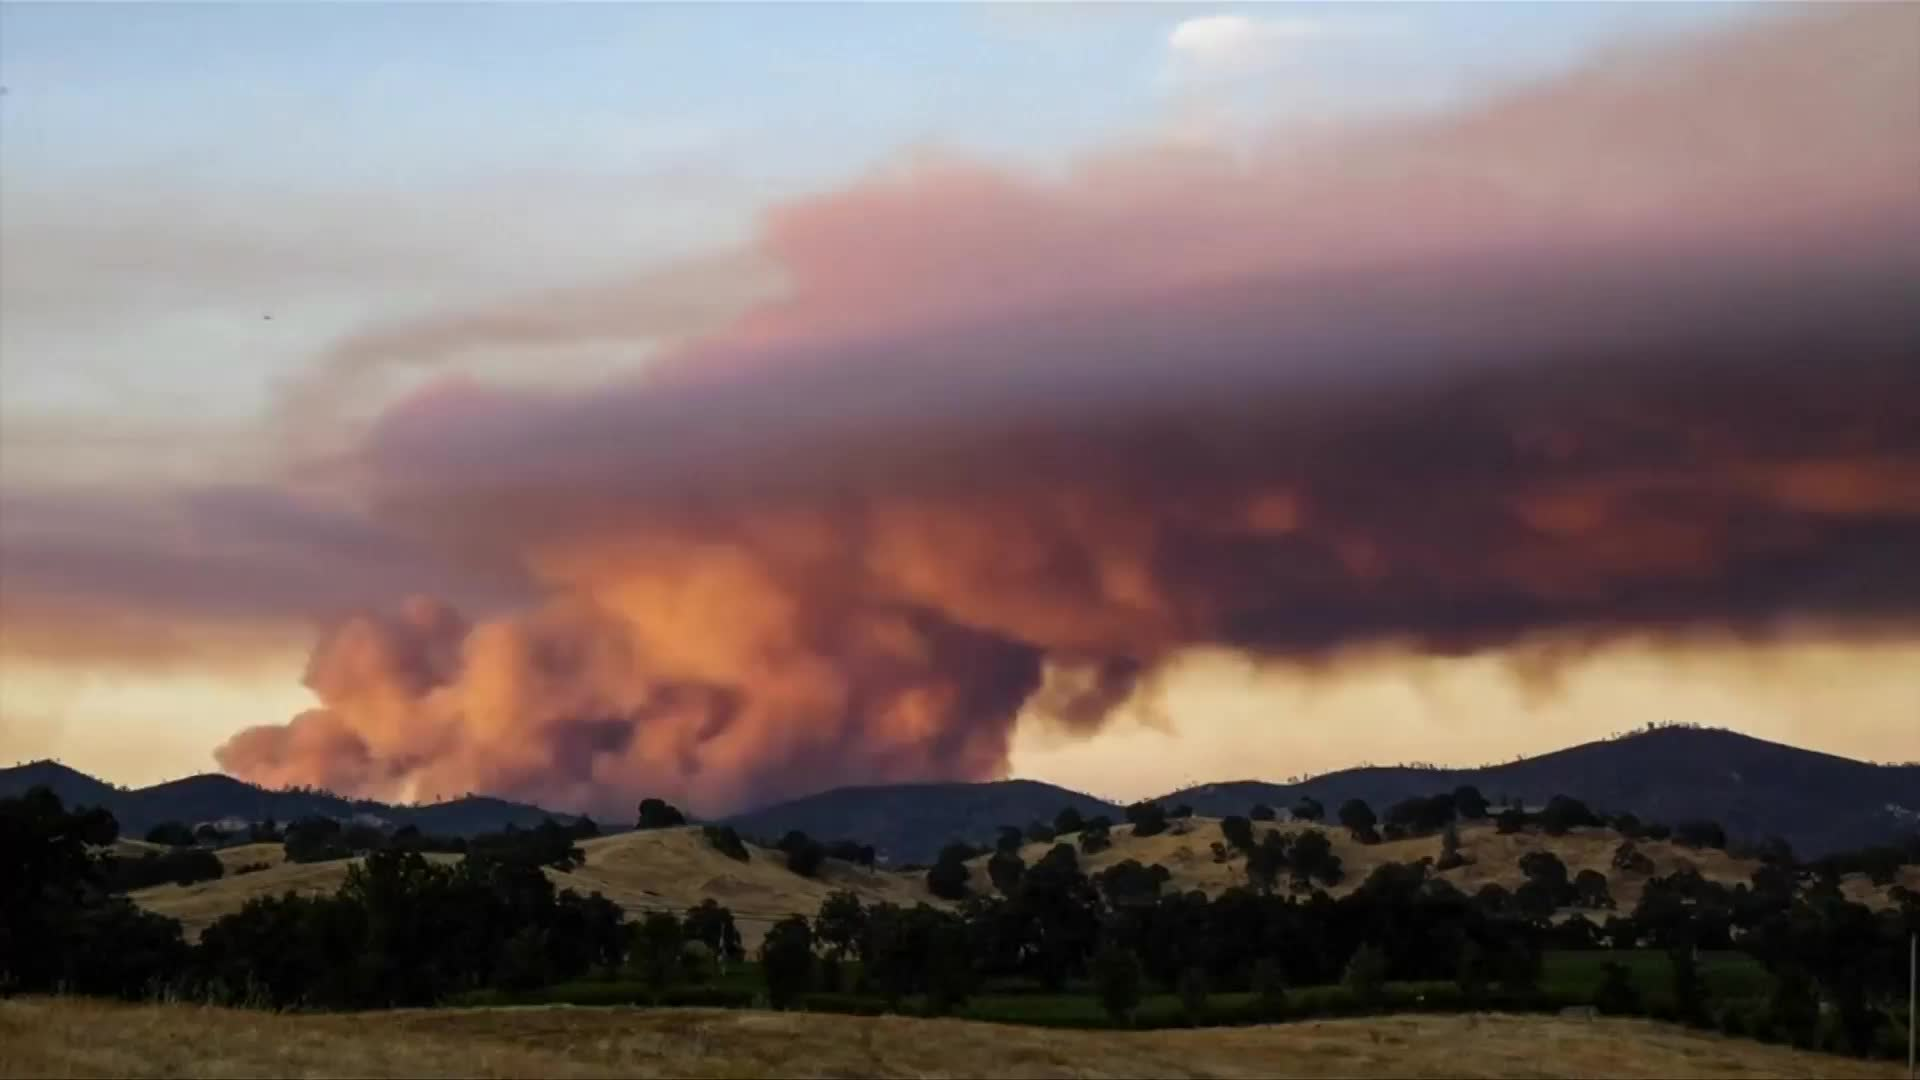 Video: Time-lapse shows California wildfire over sunset